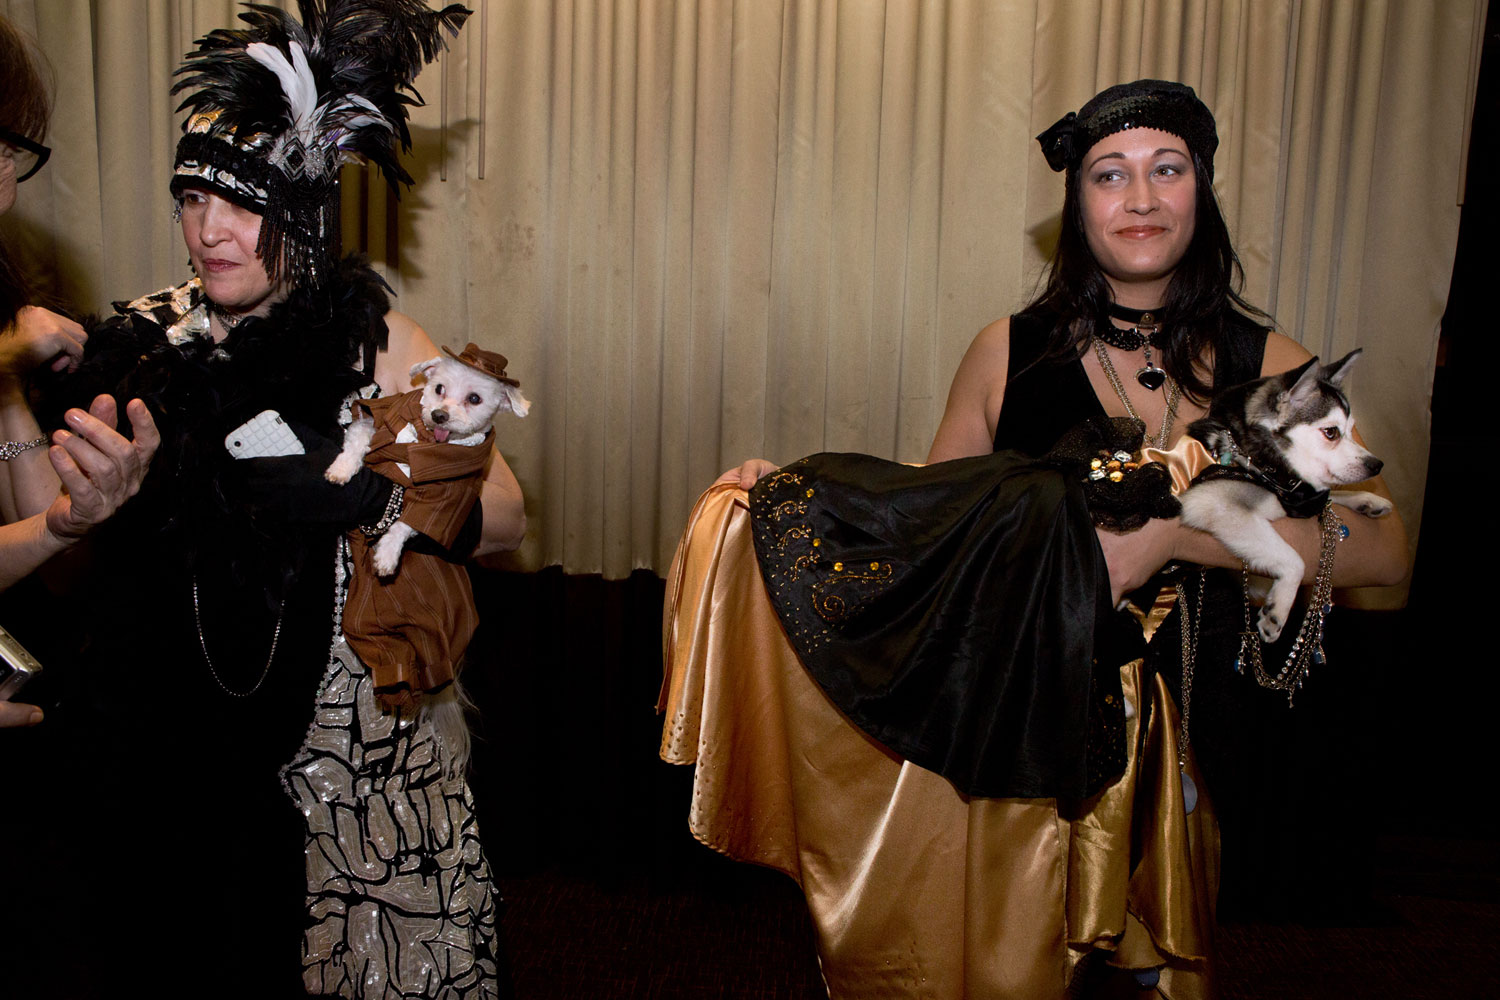 Tash De La Hoz and her Alaskan Klee Kai, Karma, at the Roaring Twenties Pet Fashion Show presented by Tropiclean and hosted by The Hotel Pennsylvania.